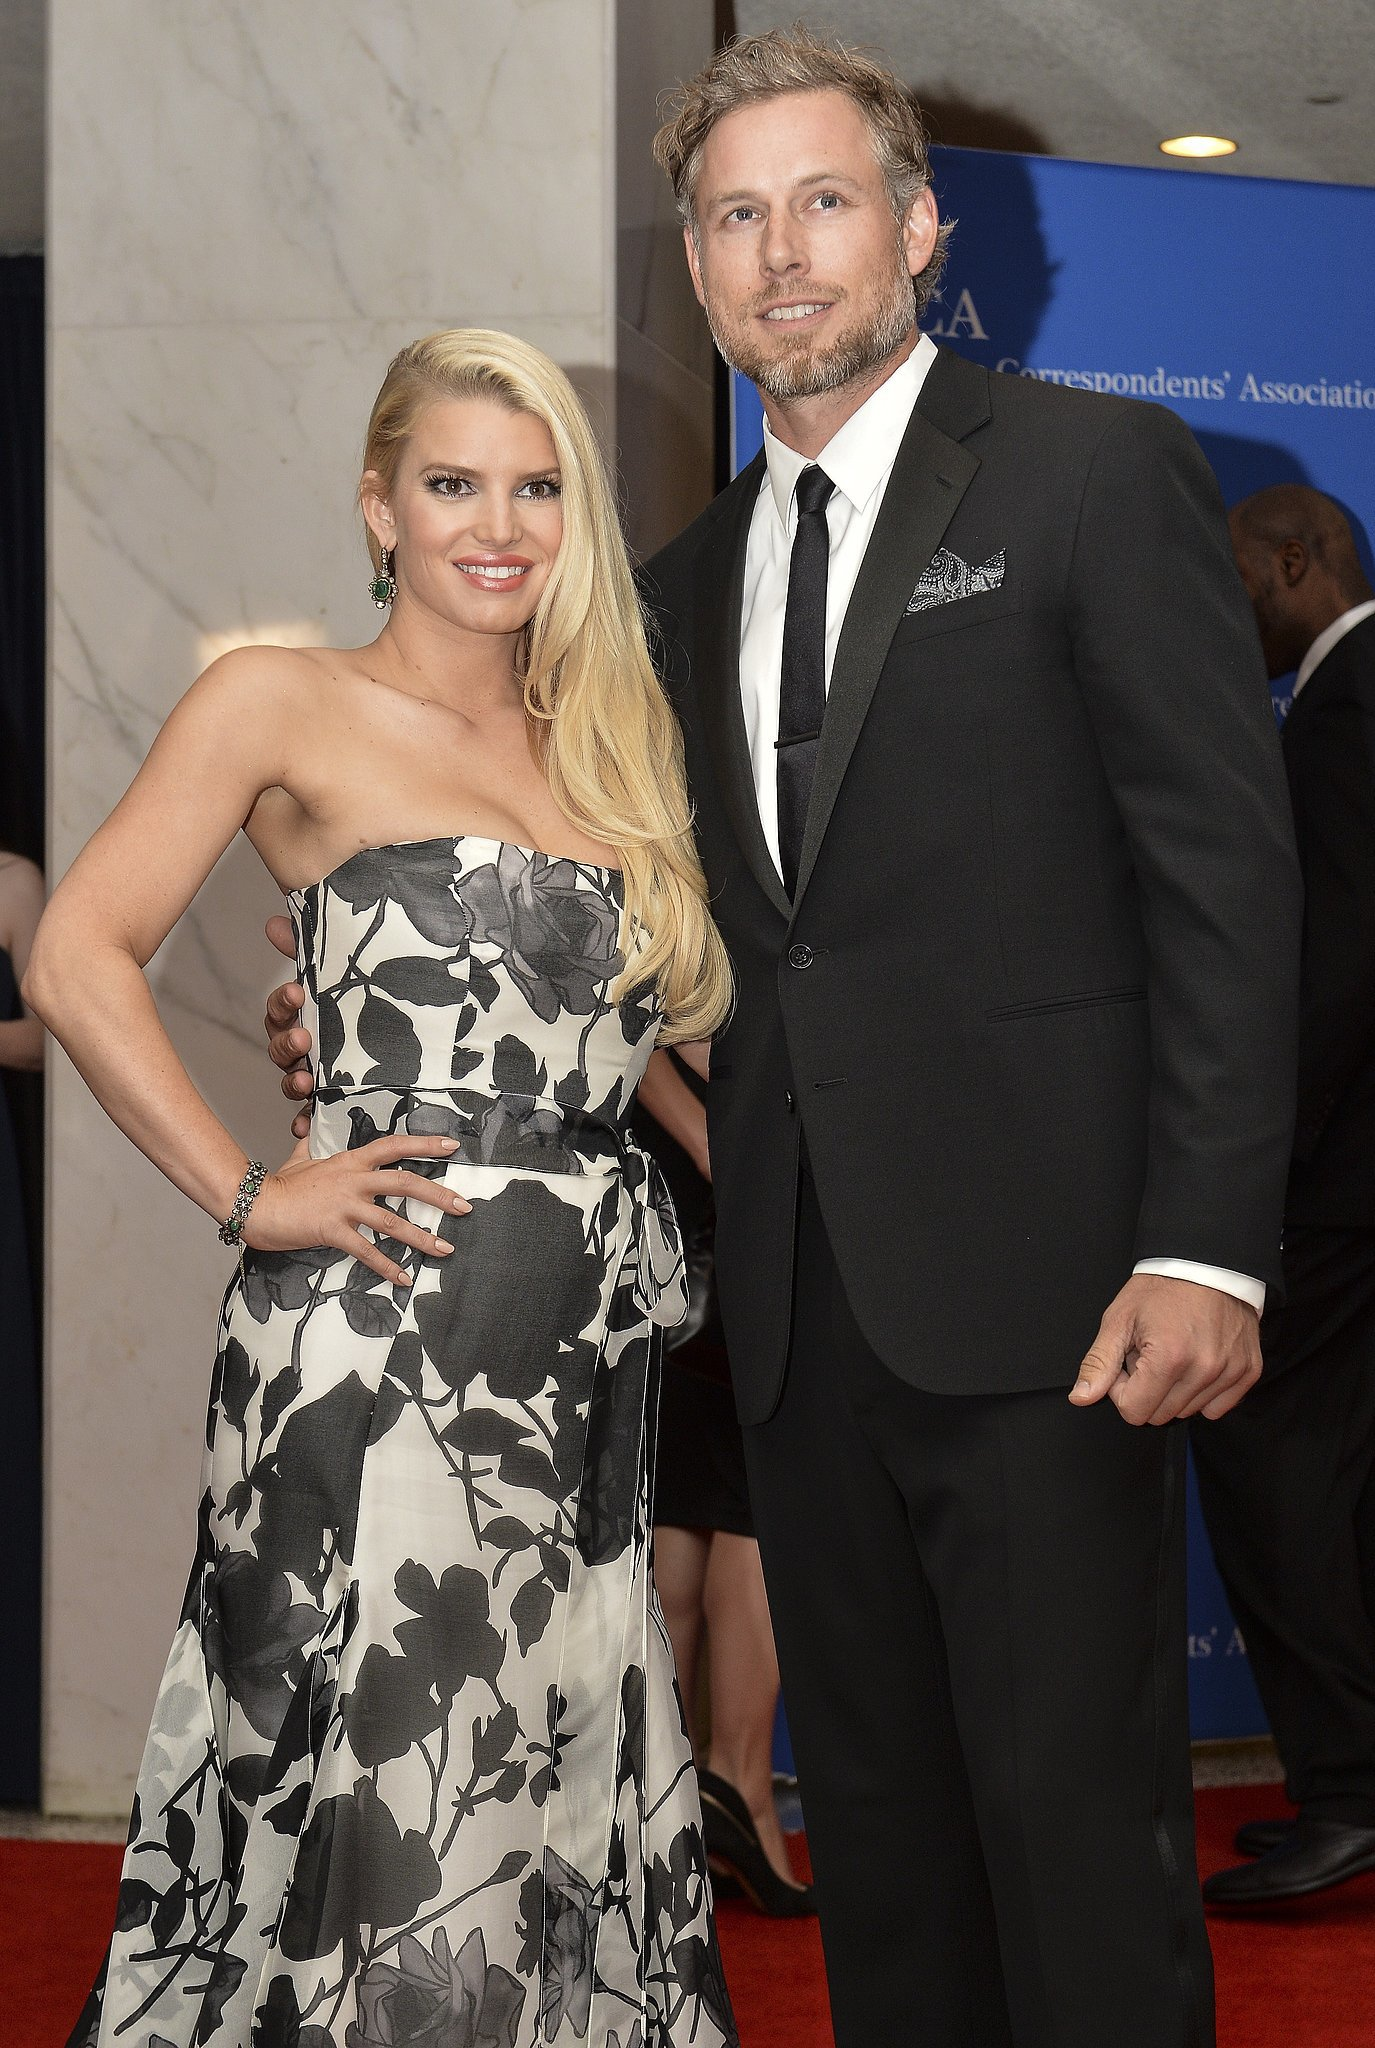 Jessica Simpson and Eric Johnson were one of the celebrity couples at the star-studded White House Correspondents' Dinner in Washington DC.